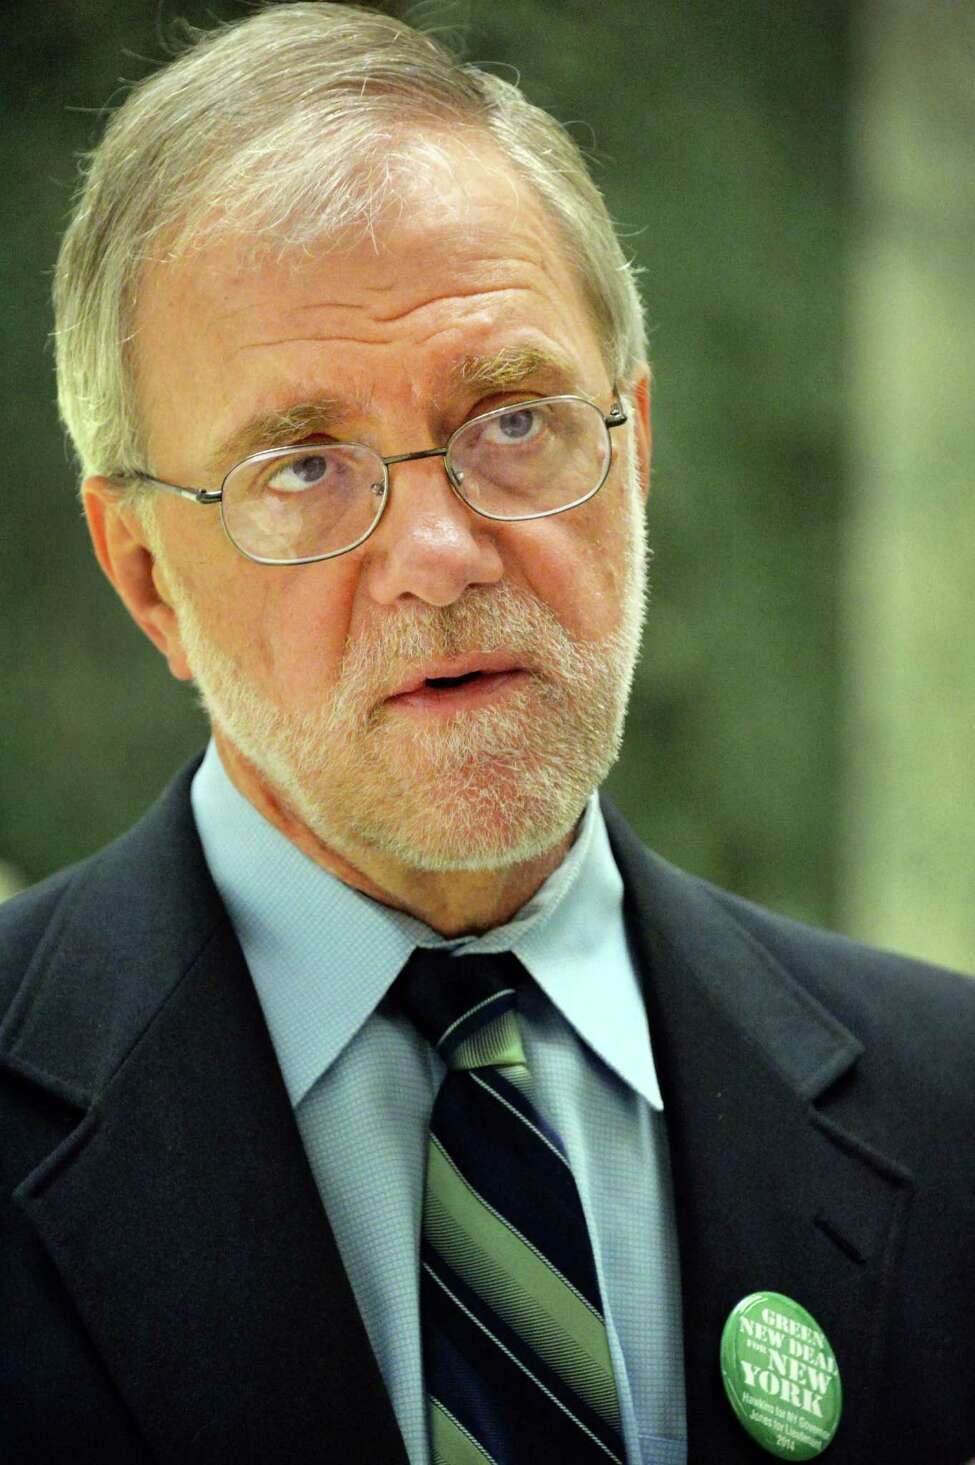 Howie Hawkins, the Green Party nominee to Governor June 4, 2014, at the Legislative Office Building in Albany, N.Y. (John Carl D'Annibale / Times Union)